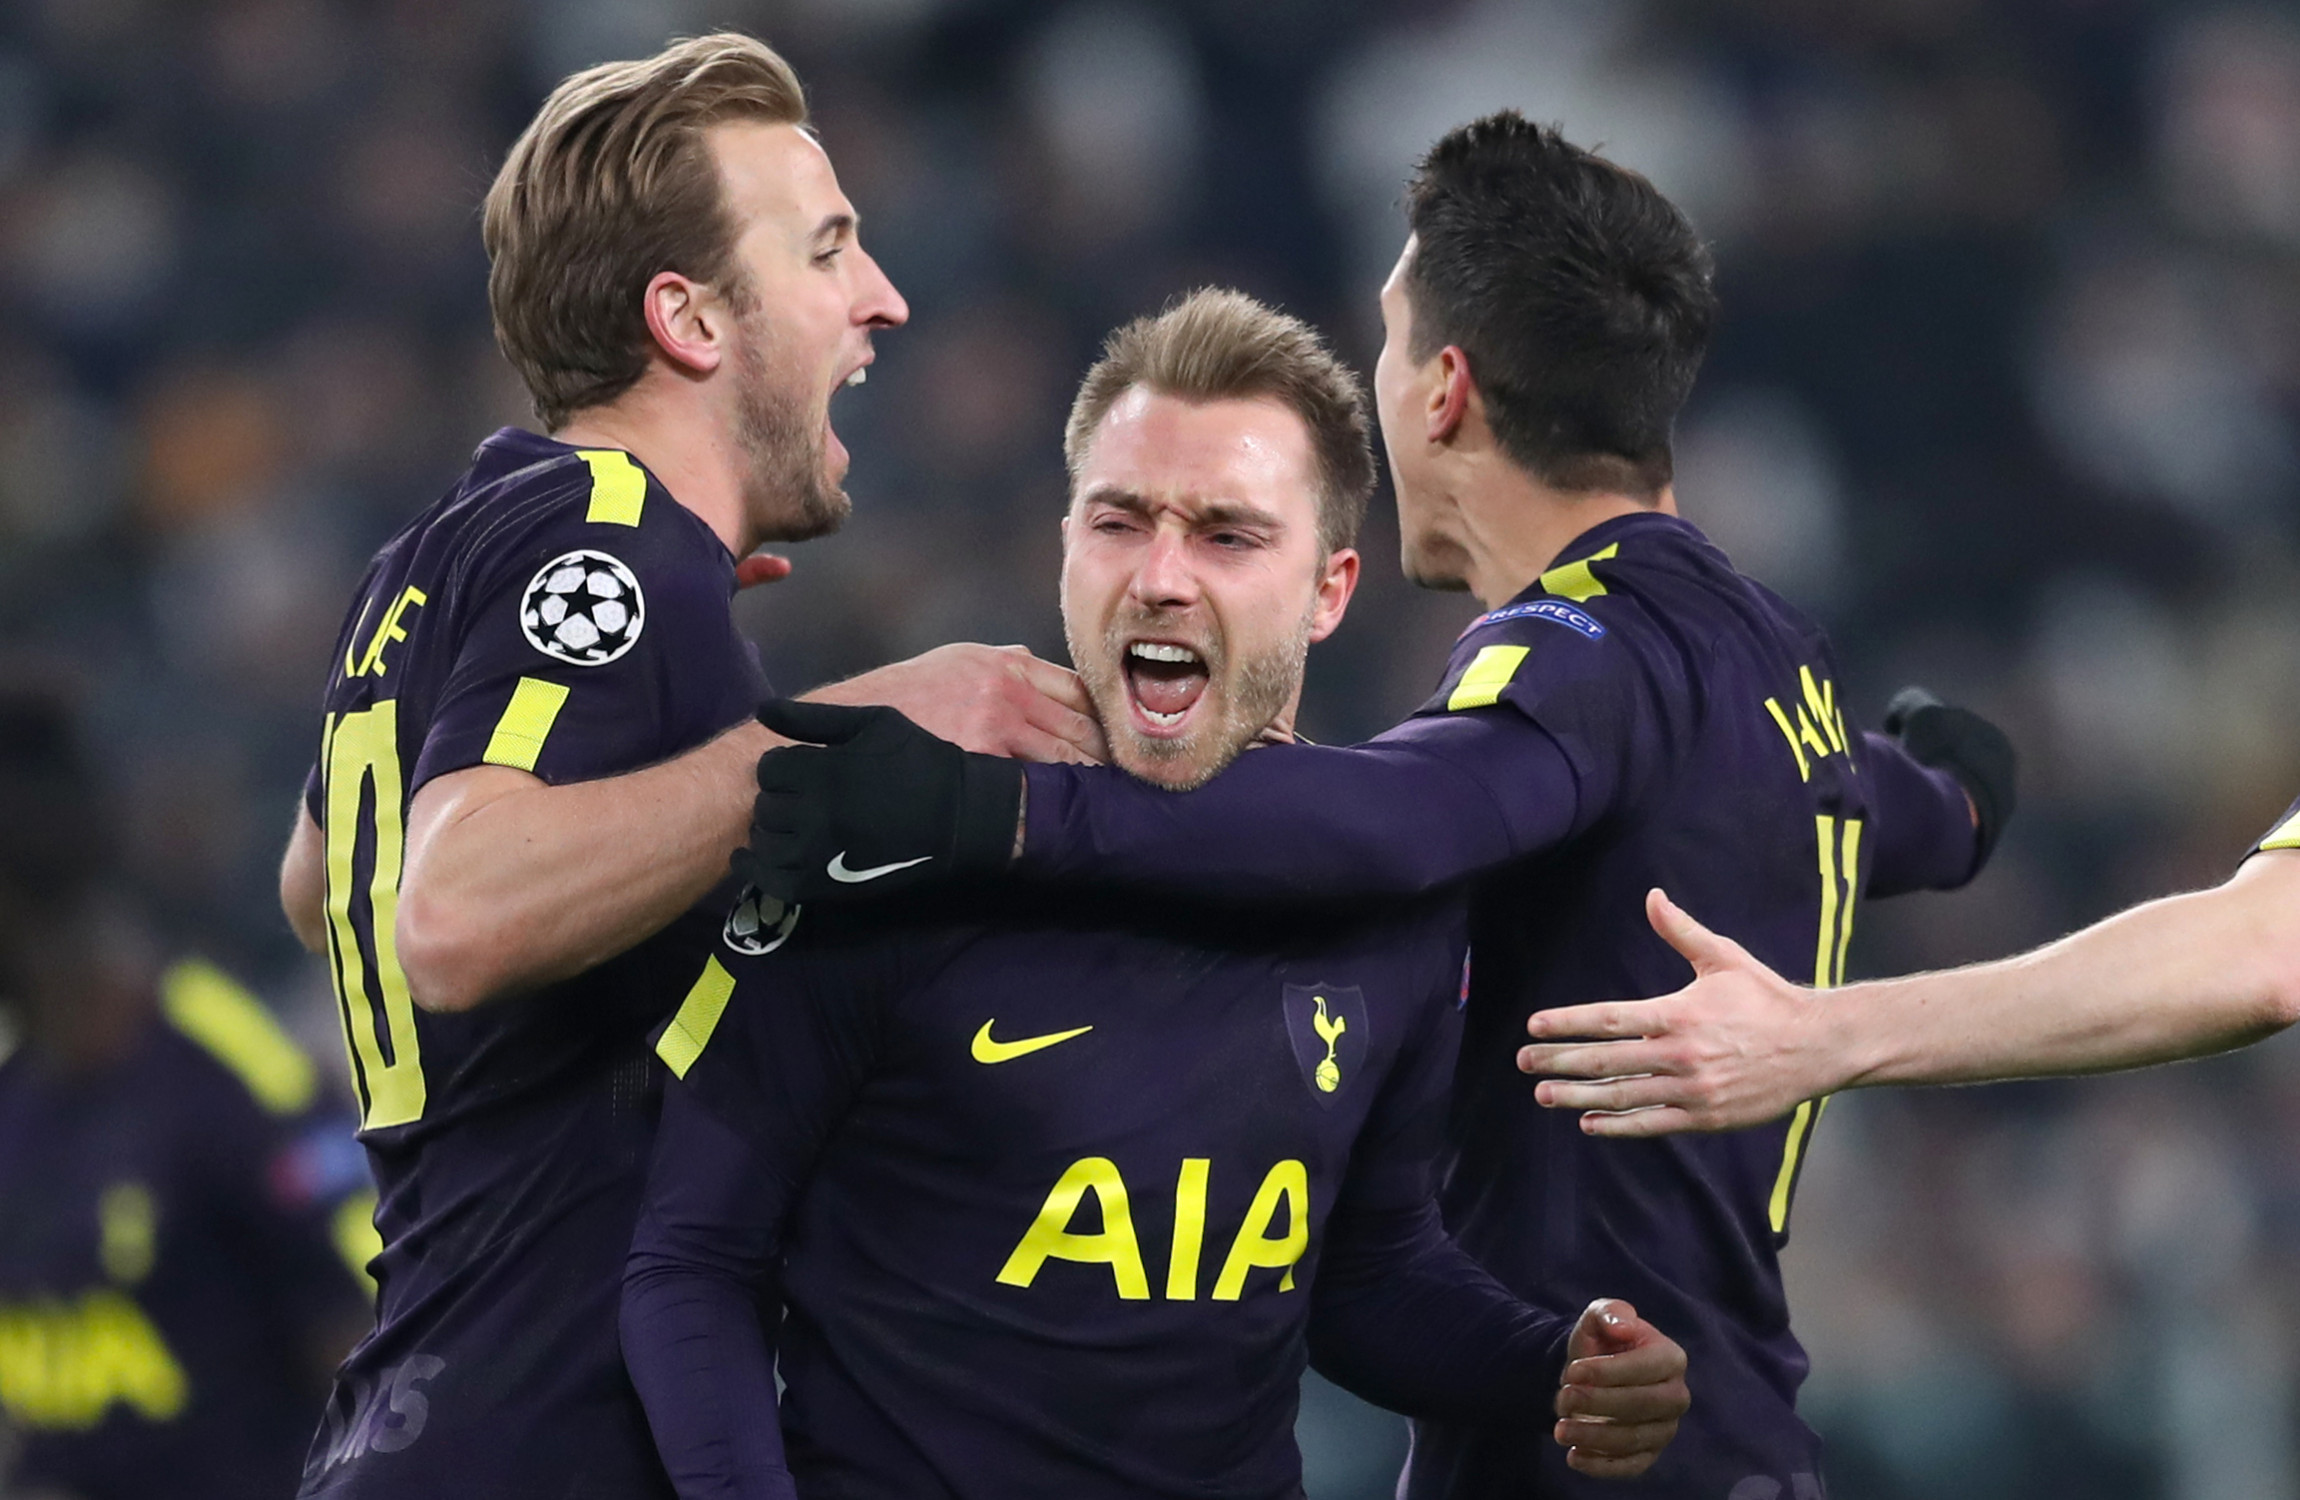 Tottenham manager Mauricio Pochettino proud with his side's 'dominance' of Juventus